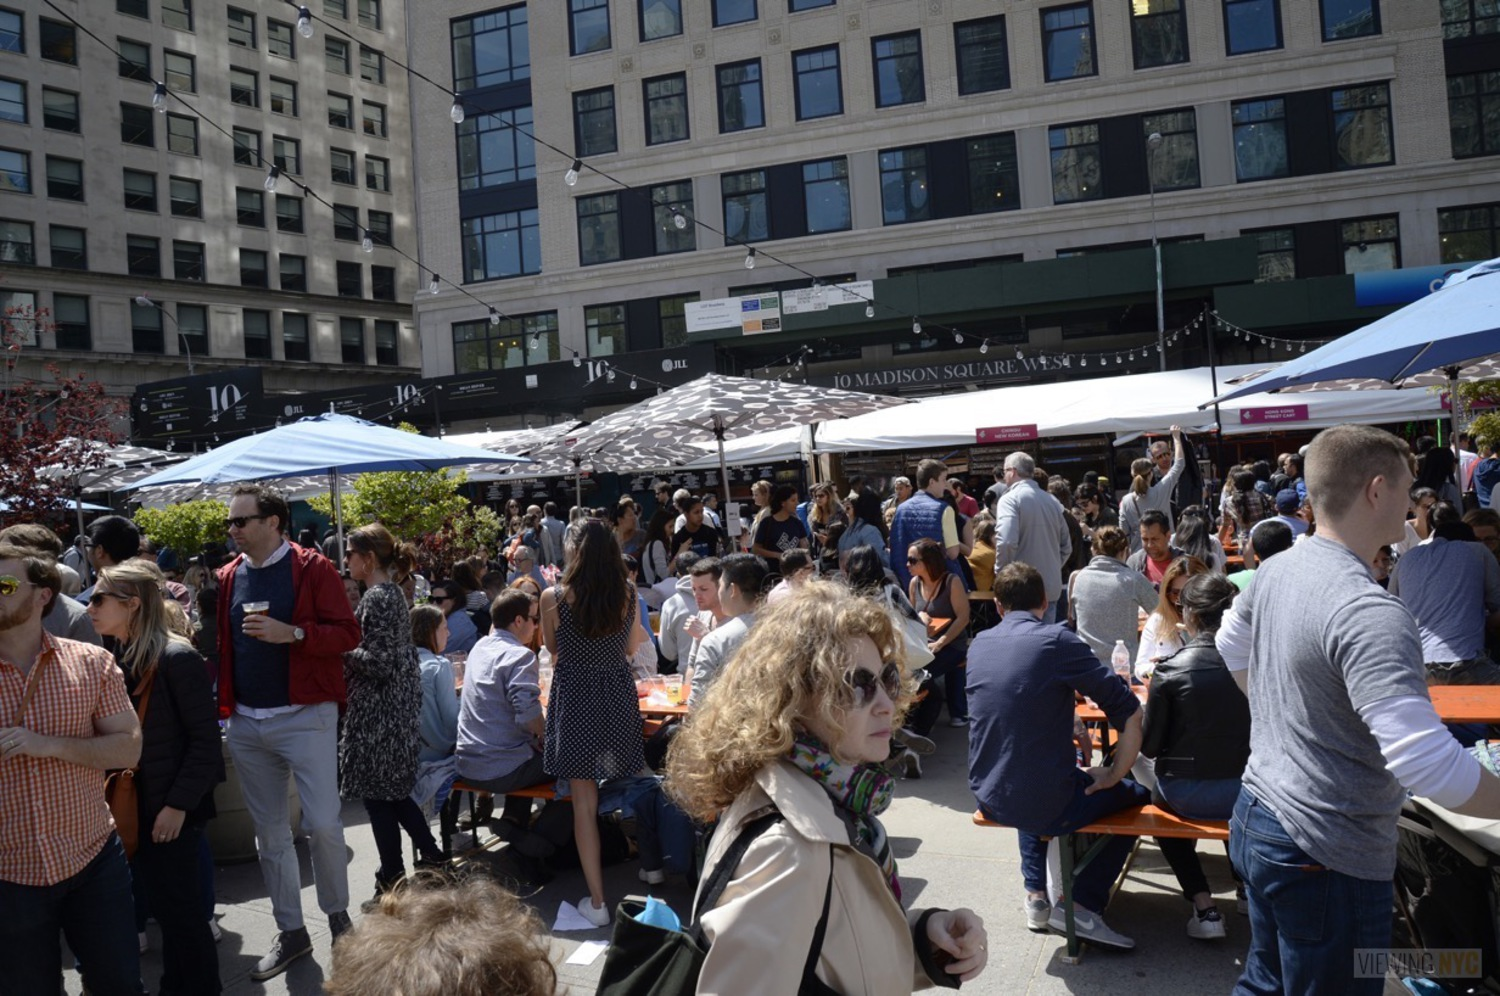 10 Madison Square | Mad. Sq. Eats / Spring 2016